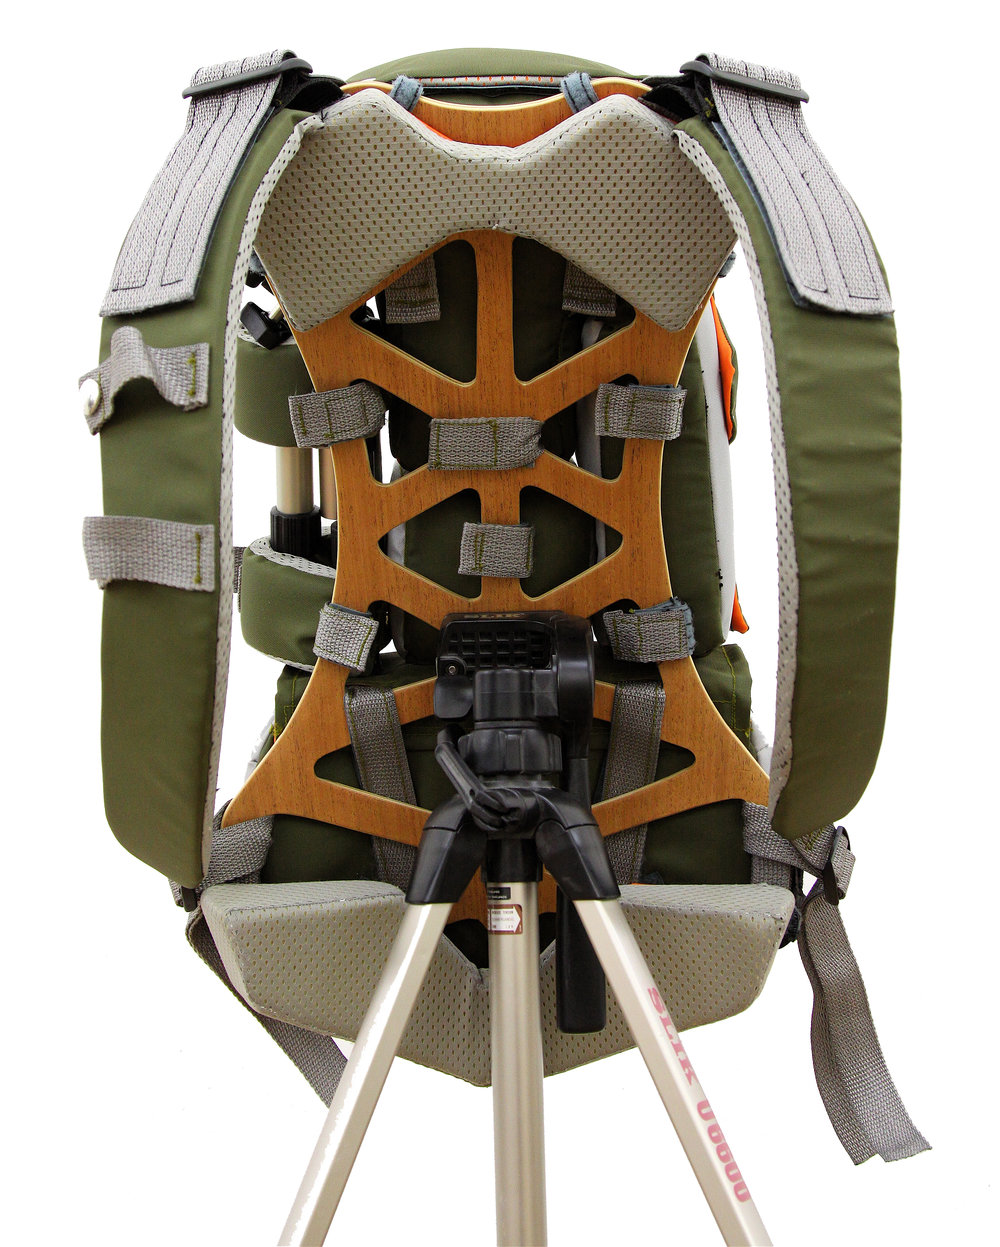 LATTIX FRAME - The Lattix frame is the heart of the modular pack system. Utilizing a single, central tripod mount that is accessible from both sides, the pack is mountable in various orientations for maximum efficiency.